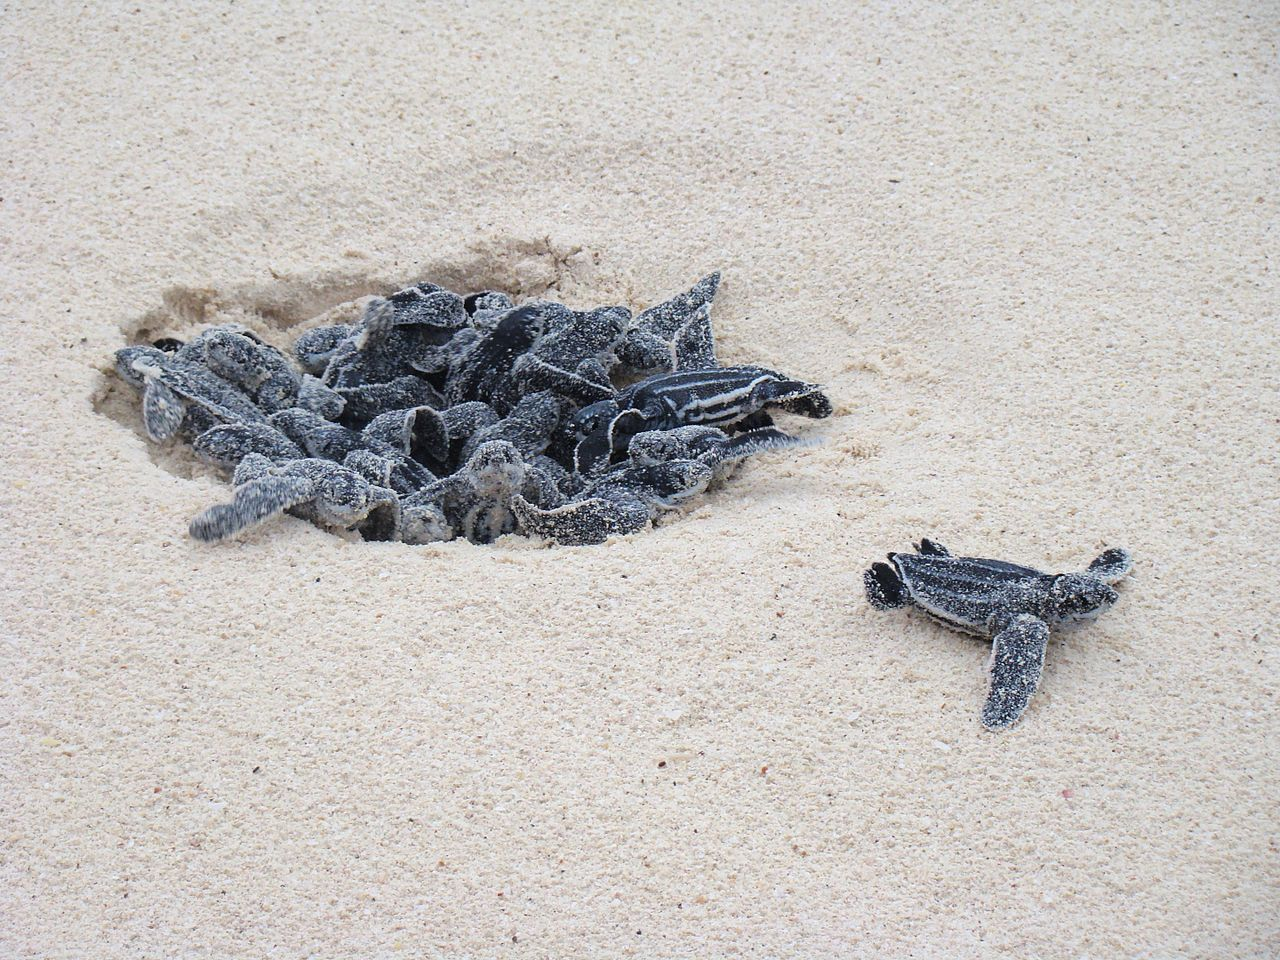 Leatherback_Turtle_eggs_hatching_at_Eagle_Beach,_Aruba By Elise Peterson - Own work_CC BY 3_0